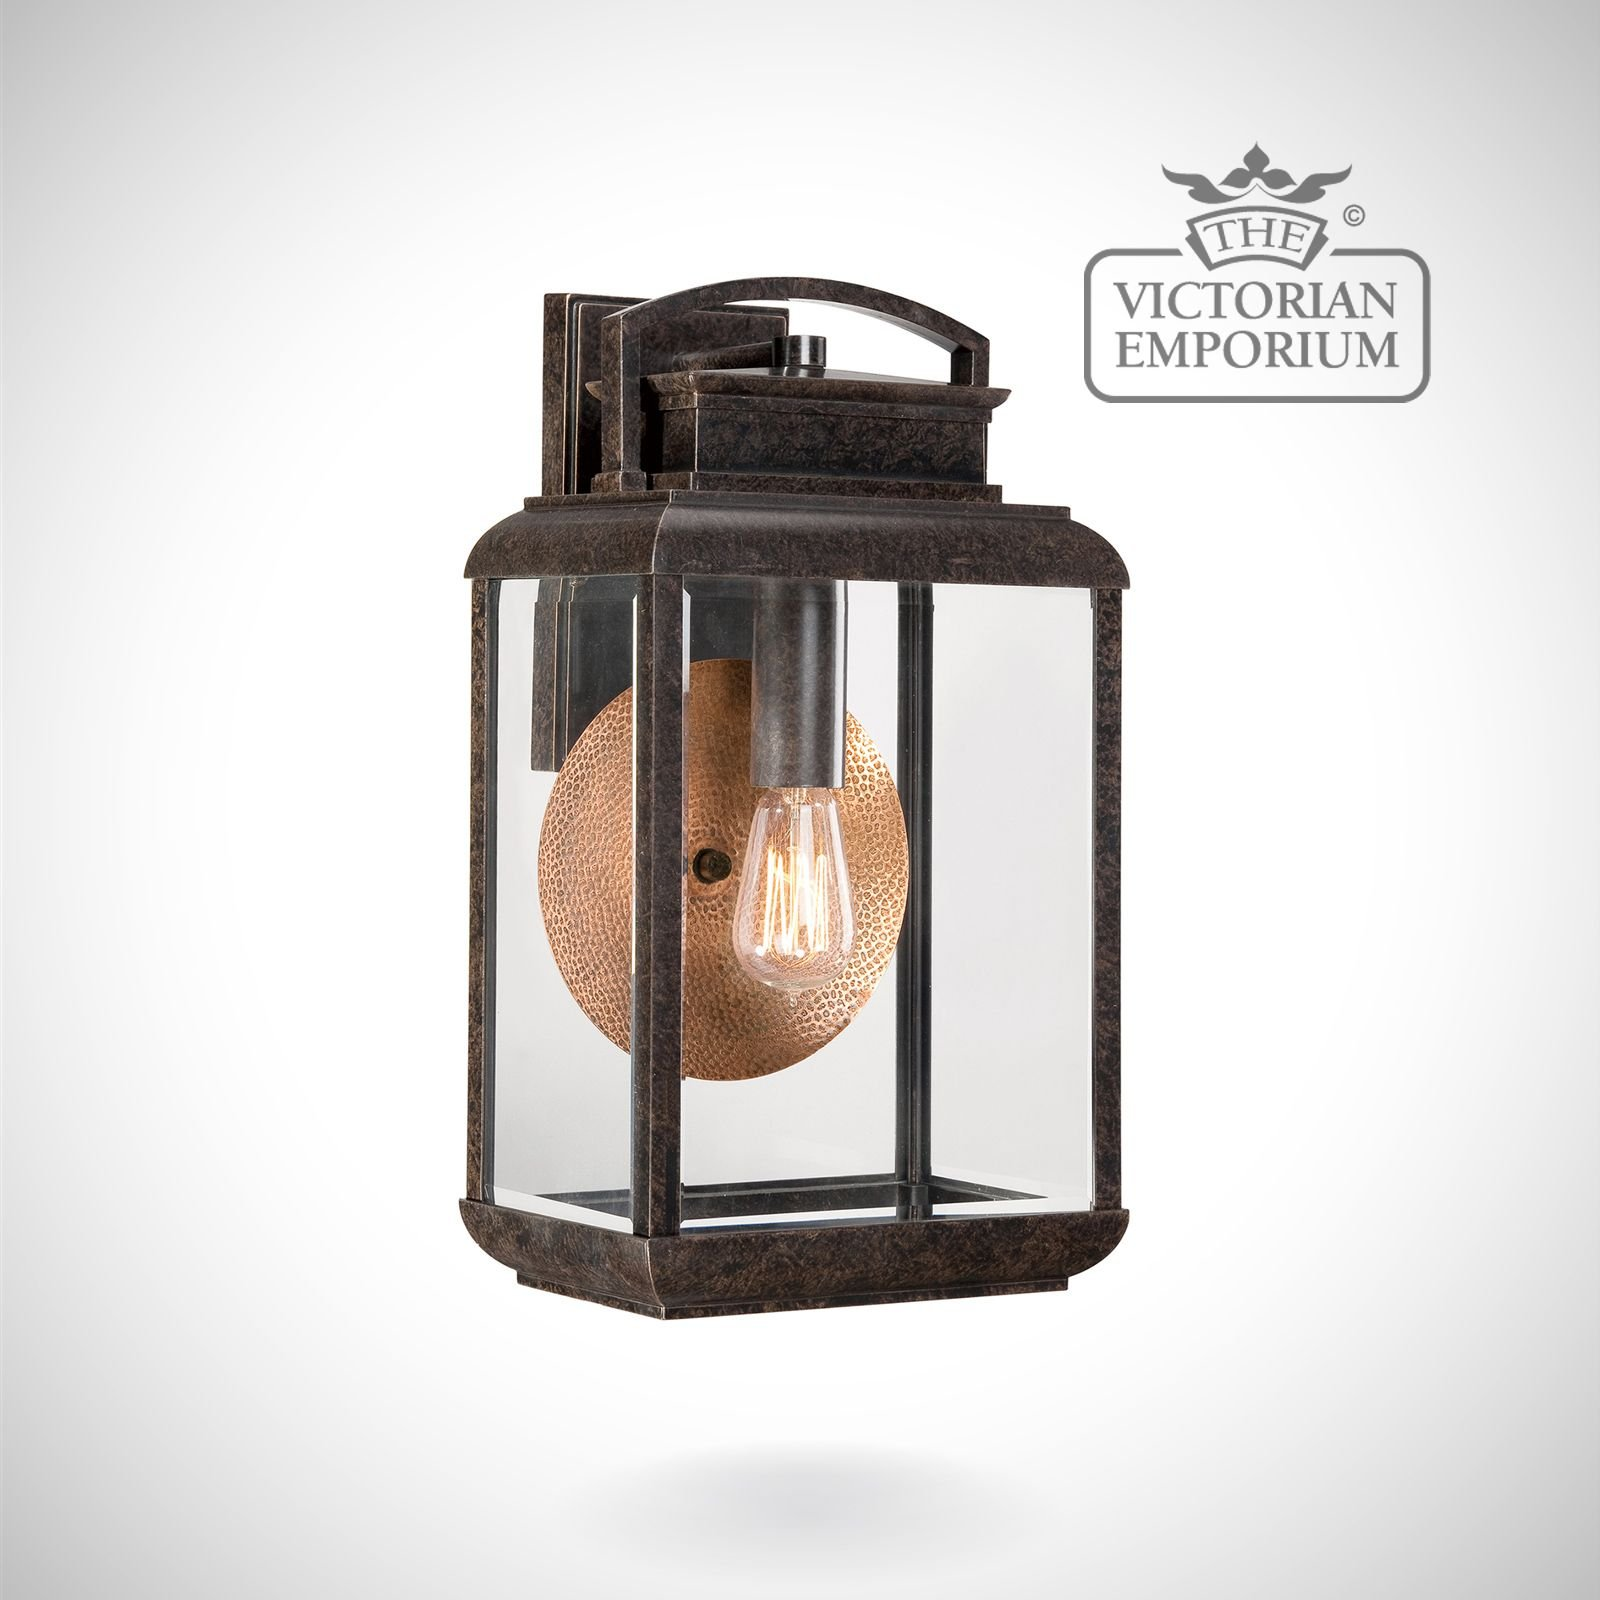 Large Lantern Wall Lights : Byron large wall lantern in Imperial Bronze Outdoor Wall Lights